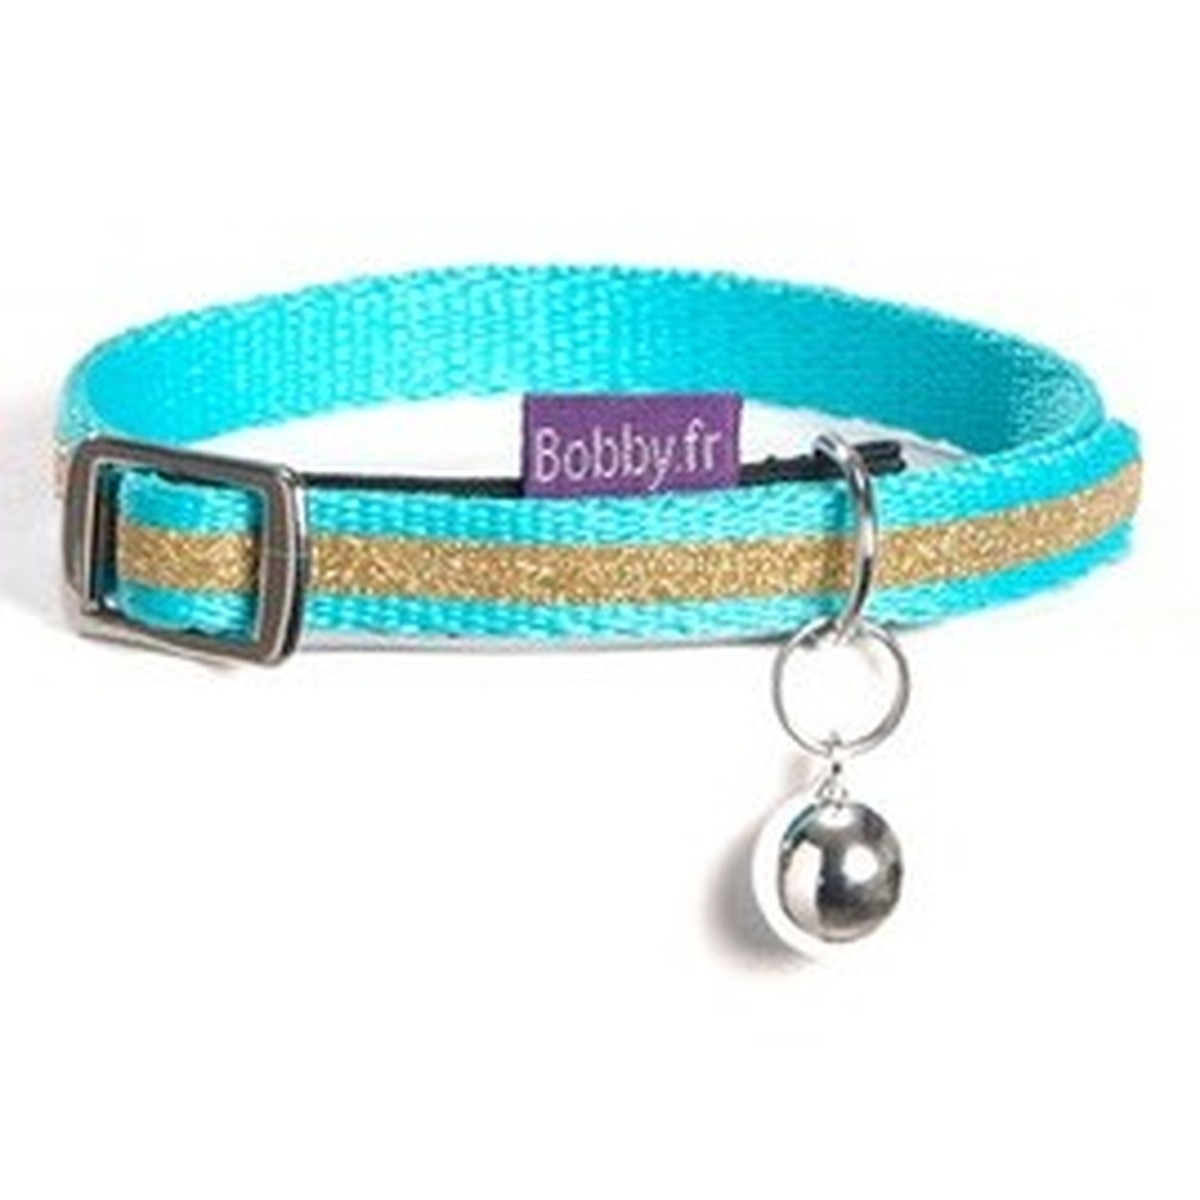 COLLIER CHAT PAPAGAYO TXS Bleu ciel XS